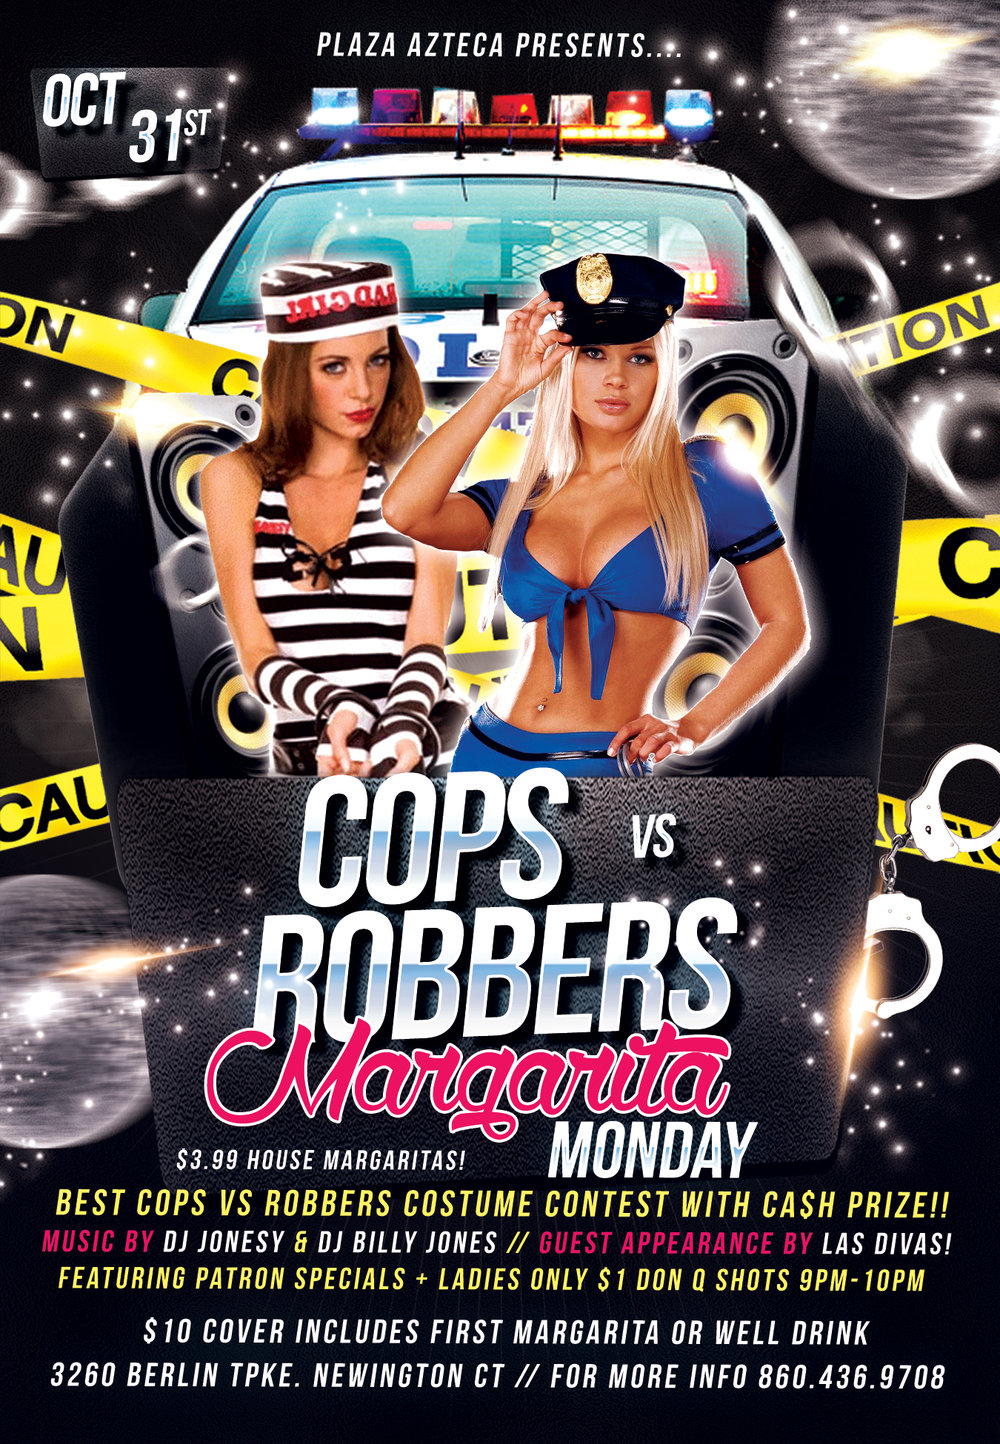 MONDAY, OCT 31ST, HALLOWEEN NIGHT, JOIN US AT PLAZA AZTECA NEWINGTON FOR MARGARITA MONDAY [HALLOWEEN EDITION]!!  THIS YEAR'S THEME IS COPS VS ROBBERS, AND BEST COSTUME GOES HOME WITH A CASH PRIZE!!  MUSIC BY JONESY + BILLY JONES STARTS AT 9PM & THERE WILL BE A SPECIAL GUEST APPEARANCE BY LAS DIVAS!!  WE WILL HAVE PATRON SPECIALS + LADIES ONLY $1 DON Q SHOTS 9PM-10PM!!  $10 COVER GETS YOU YOUR FIRST MARGARITA OR WELL DRINK ON THE HOUSE!!  HOPE TO SEE EVERYONE THERE!!